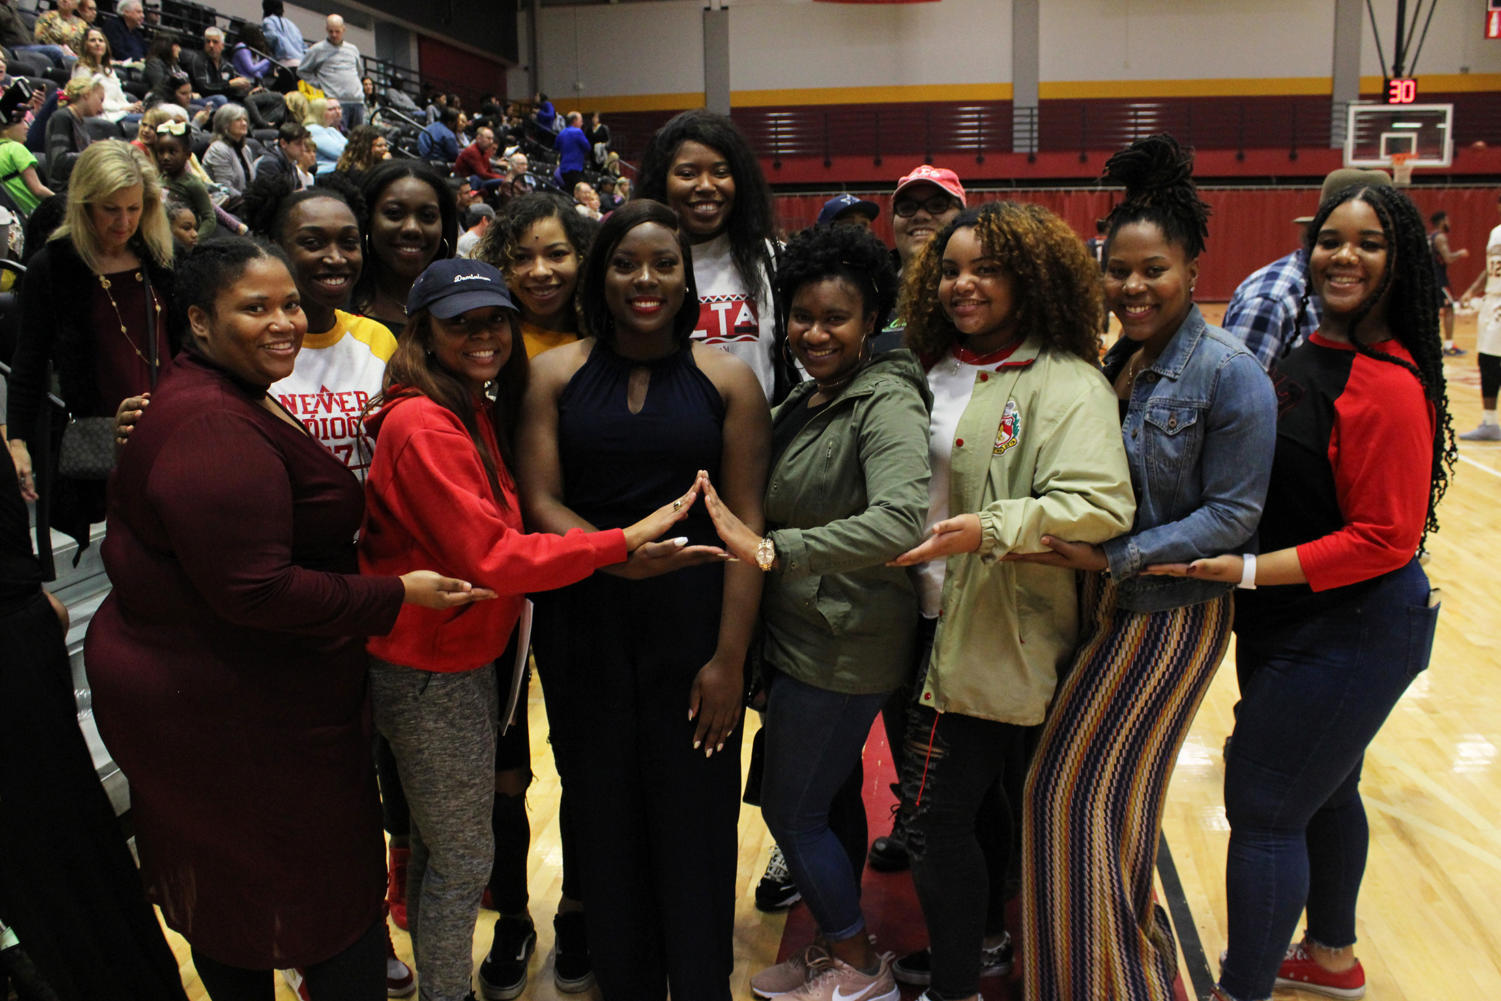 New+Hall+of+Famer+Inductee+Garkeiva+Council+A%2712+poses+with+her+sorority+sisters+of+Delta+Sigma+Theta+Sorority+Inc.+as+she+celebrates+her+honors.+Photo+credit%3A+Rosha%27E+Gibson